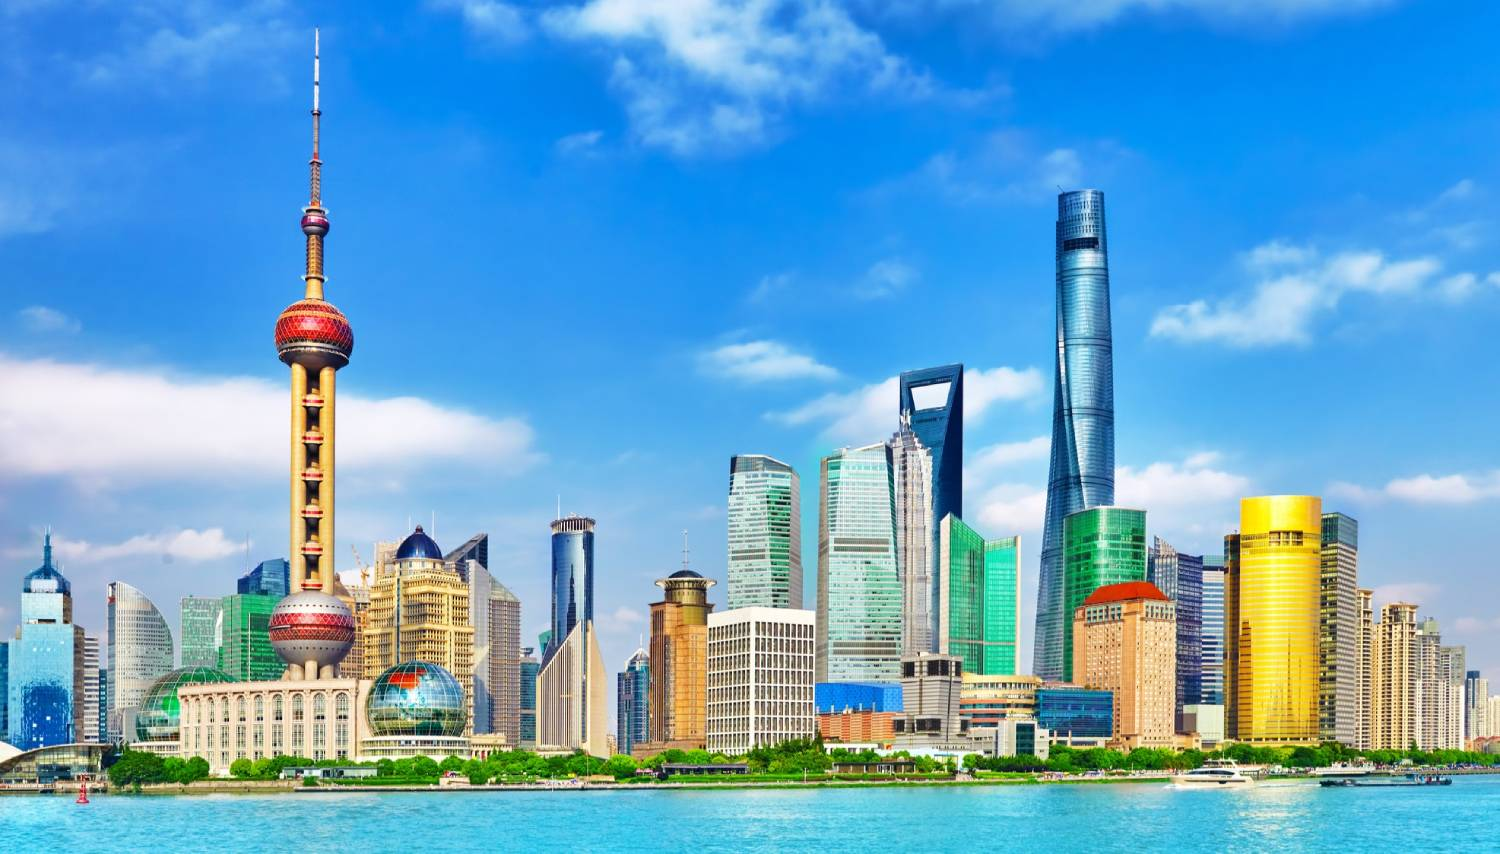 Pudong - Things To Do In Shanghai